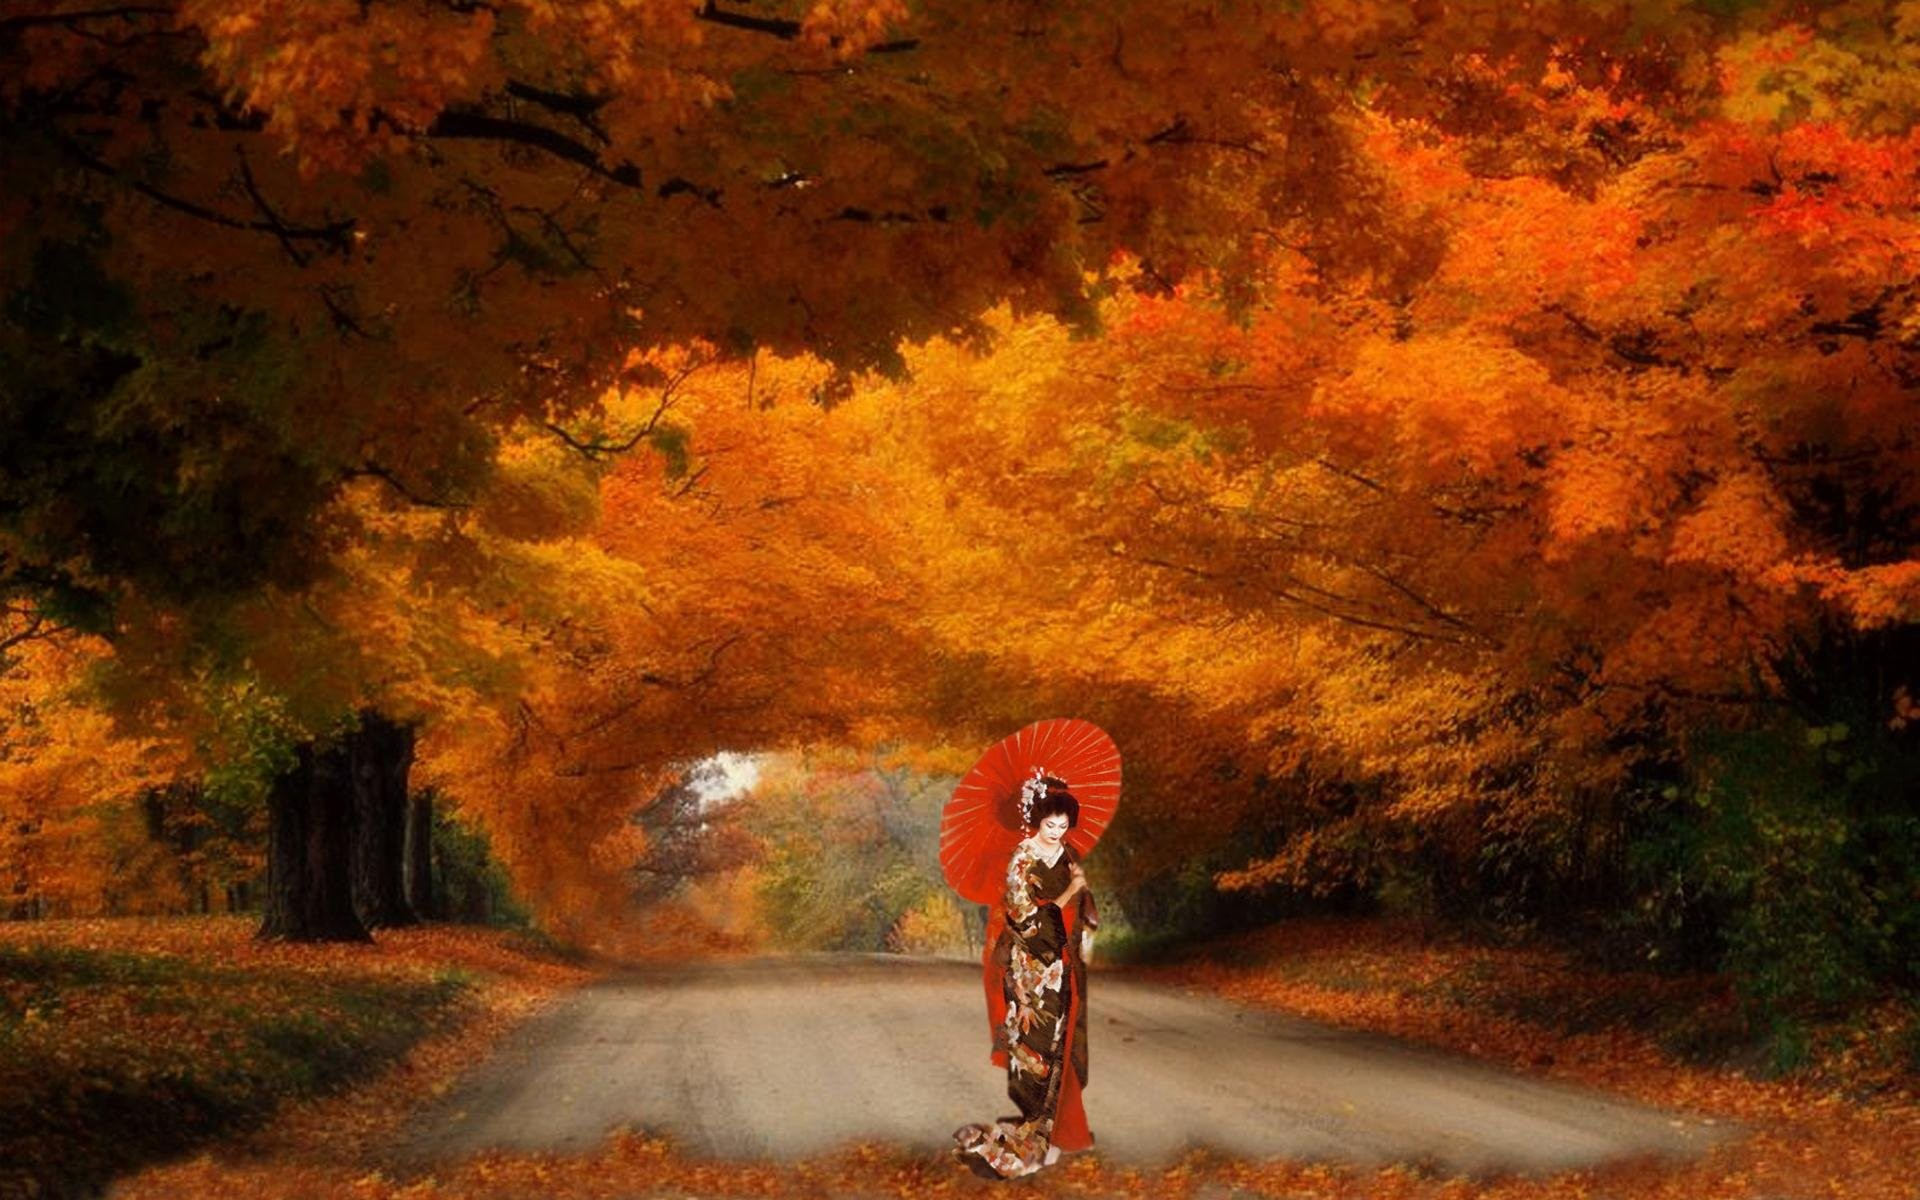 Res: 1920x1200, path, hd vector images,autumn, mood,android, fall, landscape, windows, asian,  umbrella, free geisha, trail, nature, leaf, oriental, tree, leaves, forest,  ...